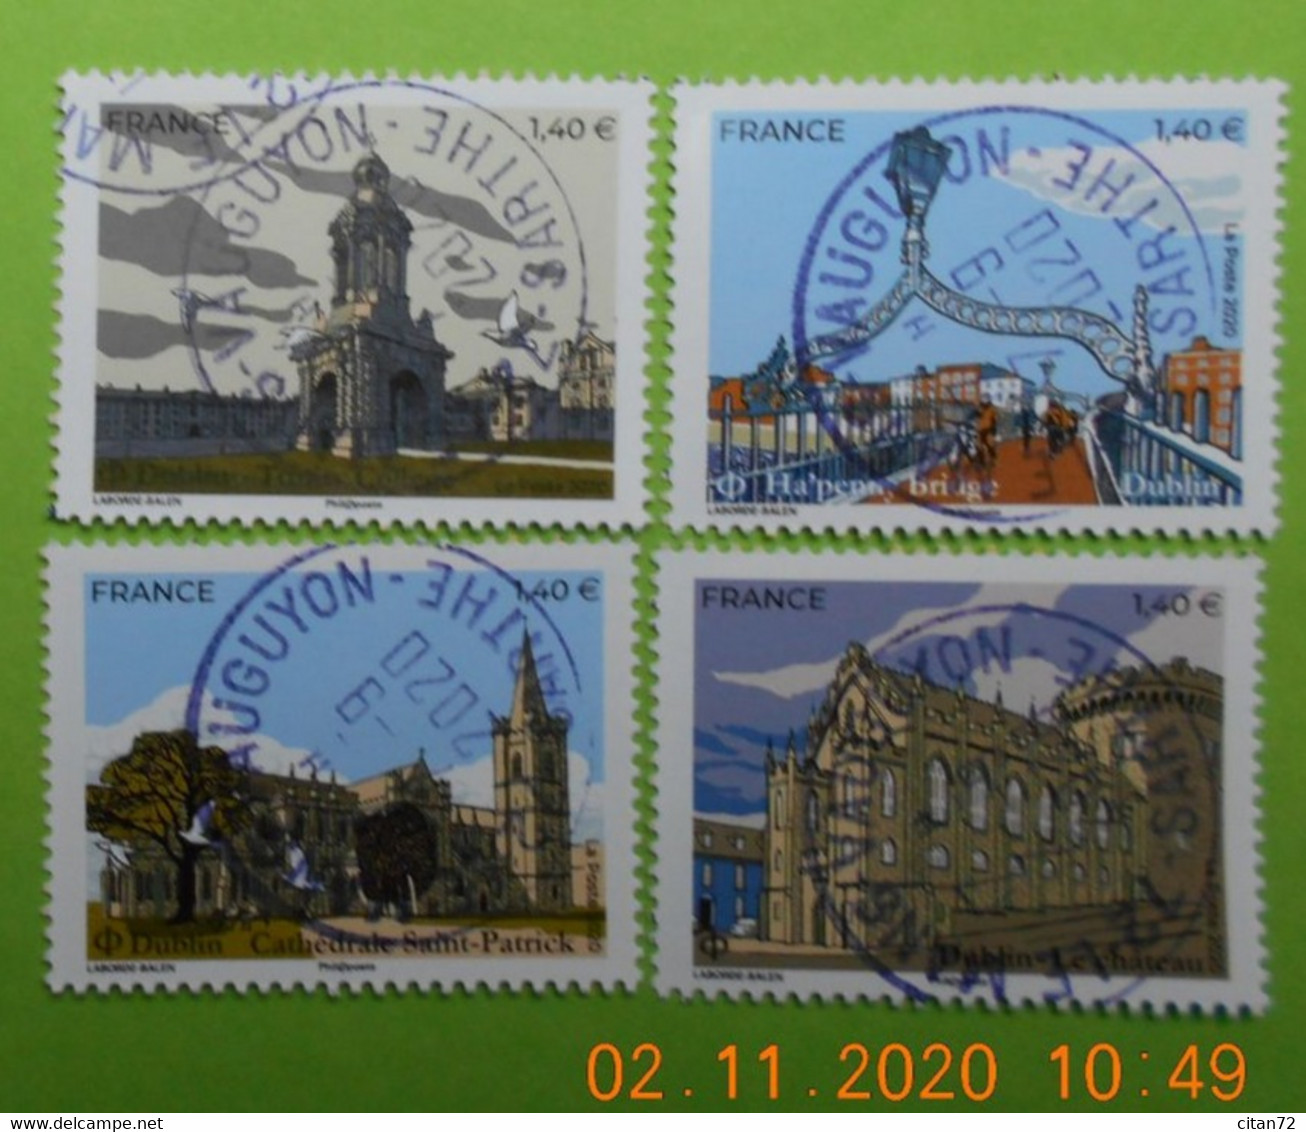 FRANCE 2019   YT N°5307-5310     DU  FEUILLET  CAPITALES EUROPEENNES  HELSINKI    Timbres  Neufs  Cachets   RONDS - Used Stamps